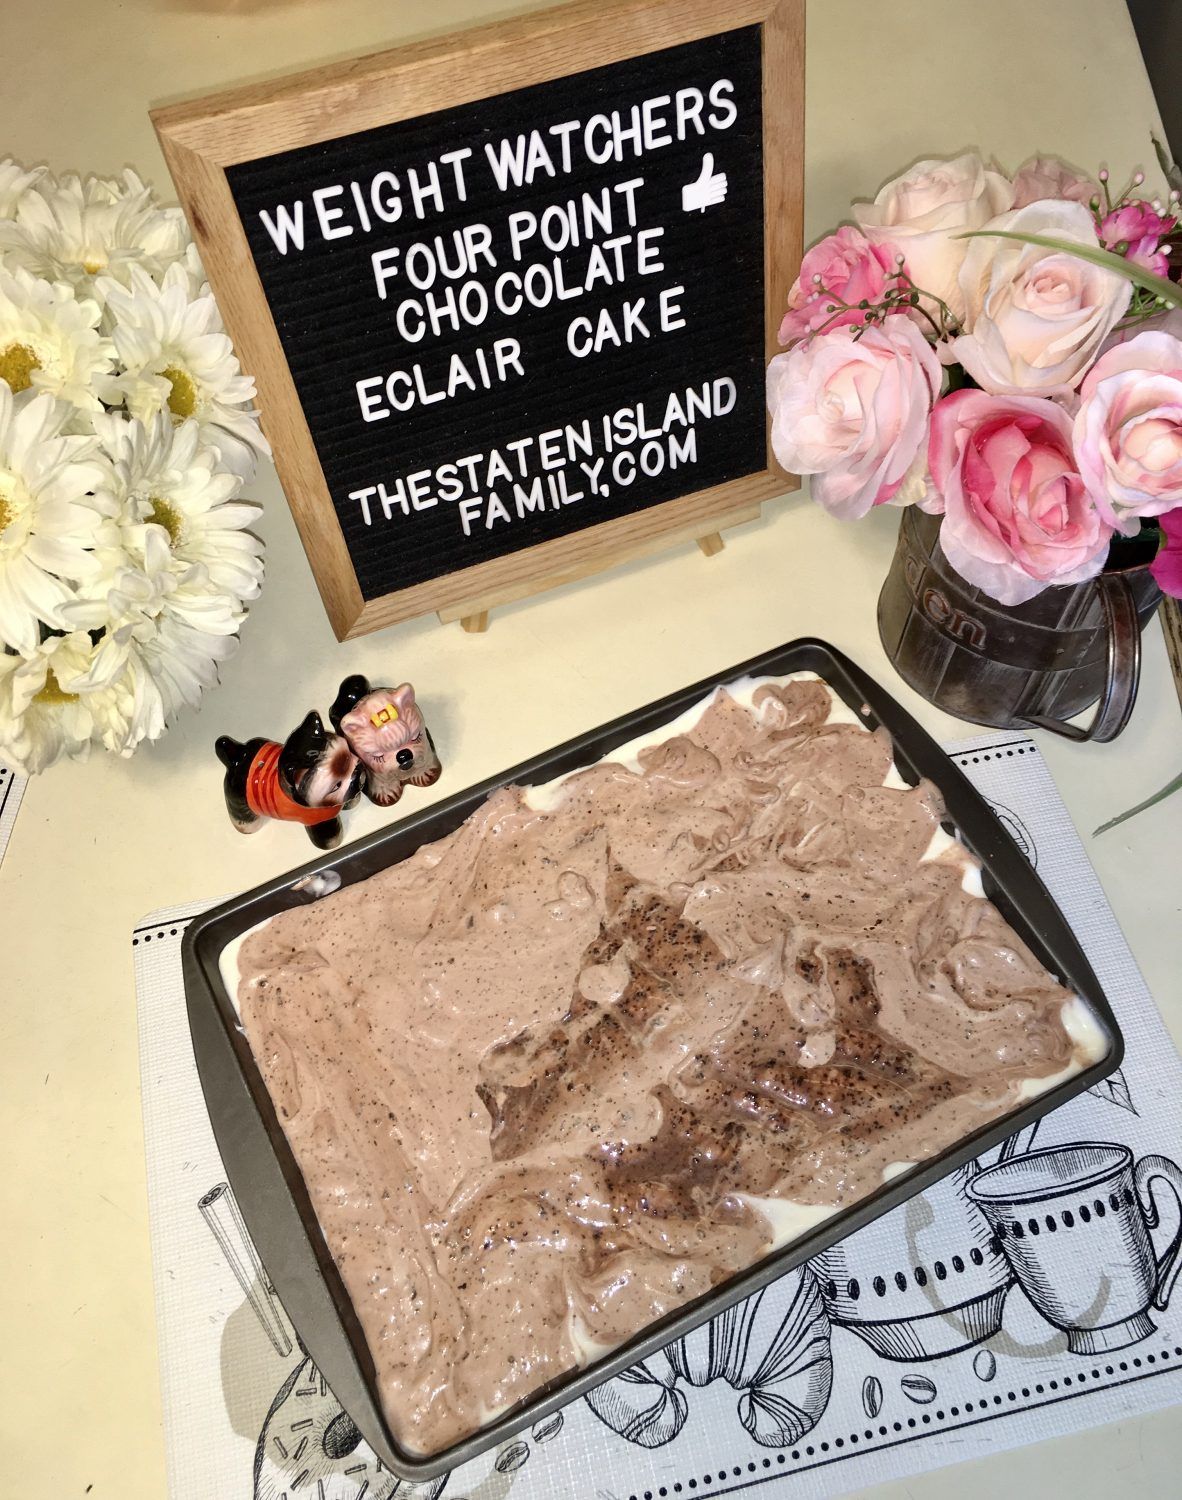 Weight Watchers Chocolate eclair cake